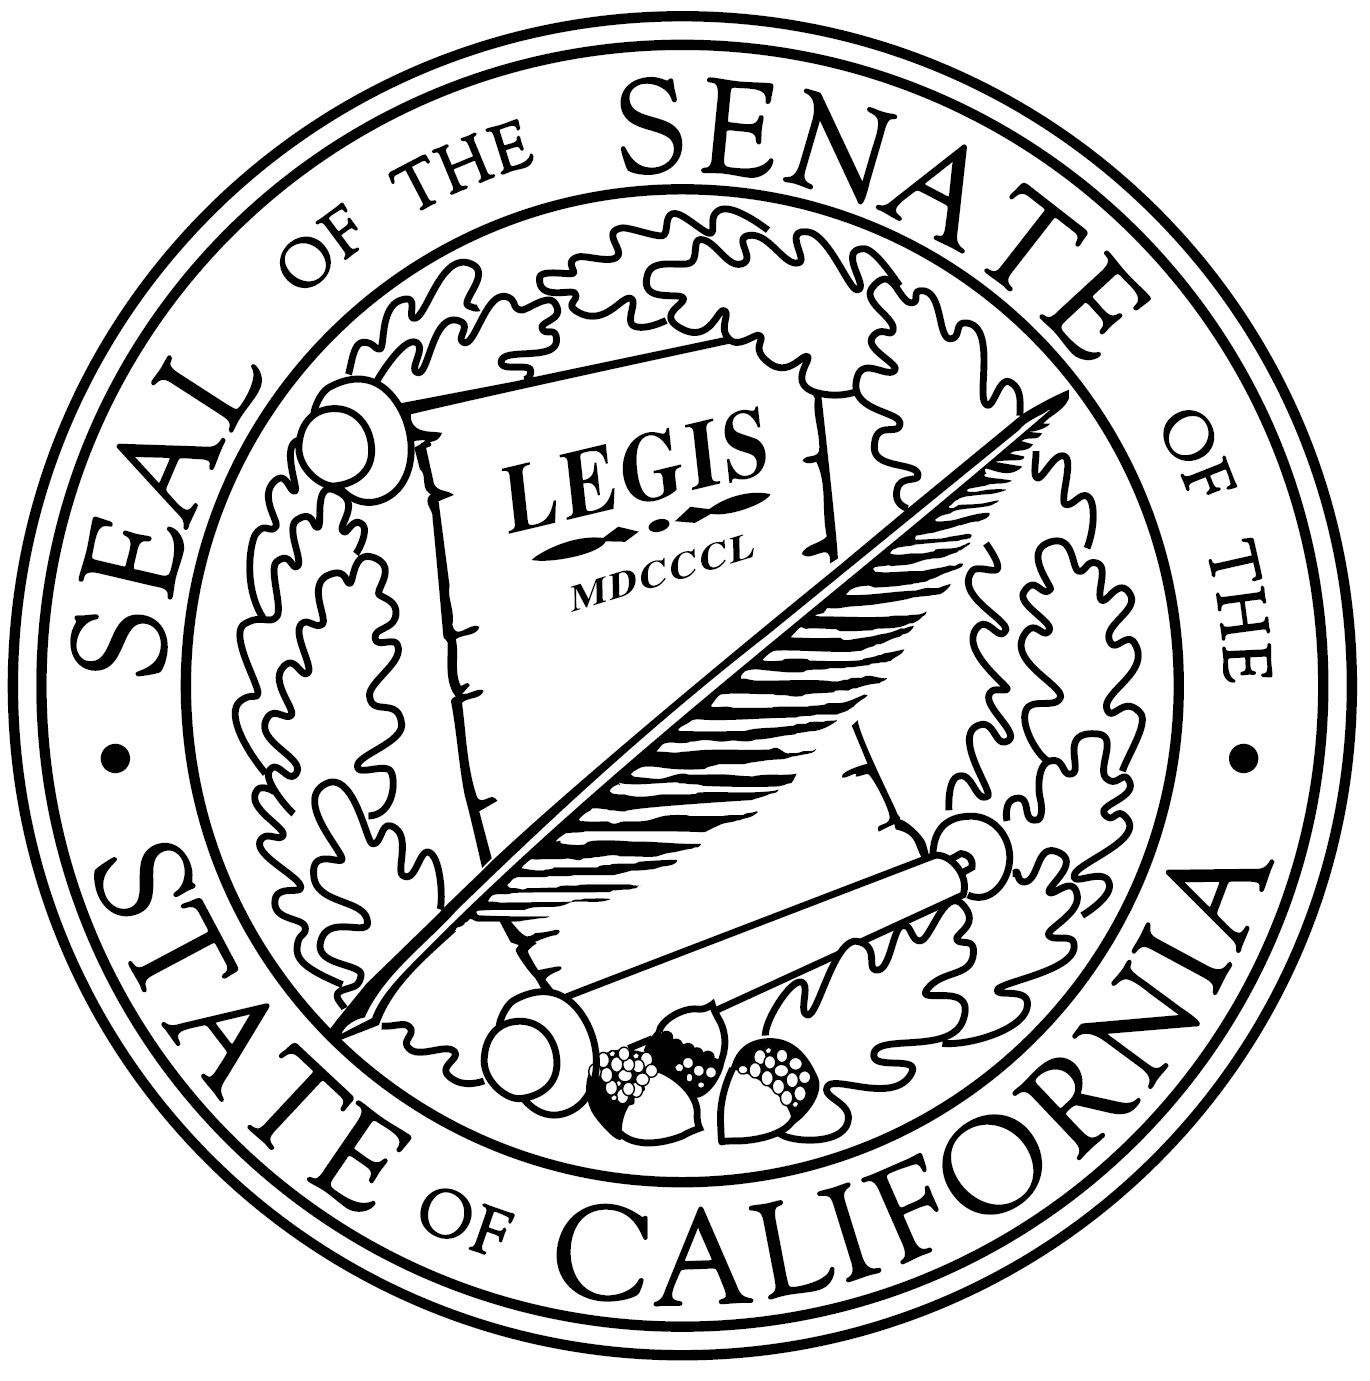 ca state seal california state drawing free download on clipartmag ca state seal